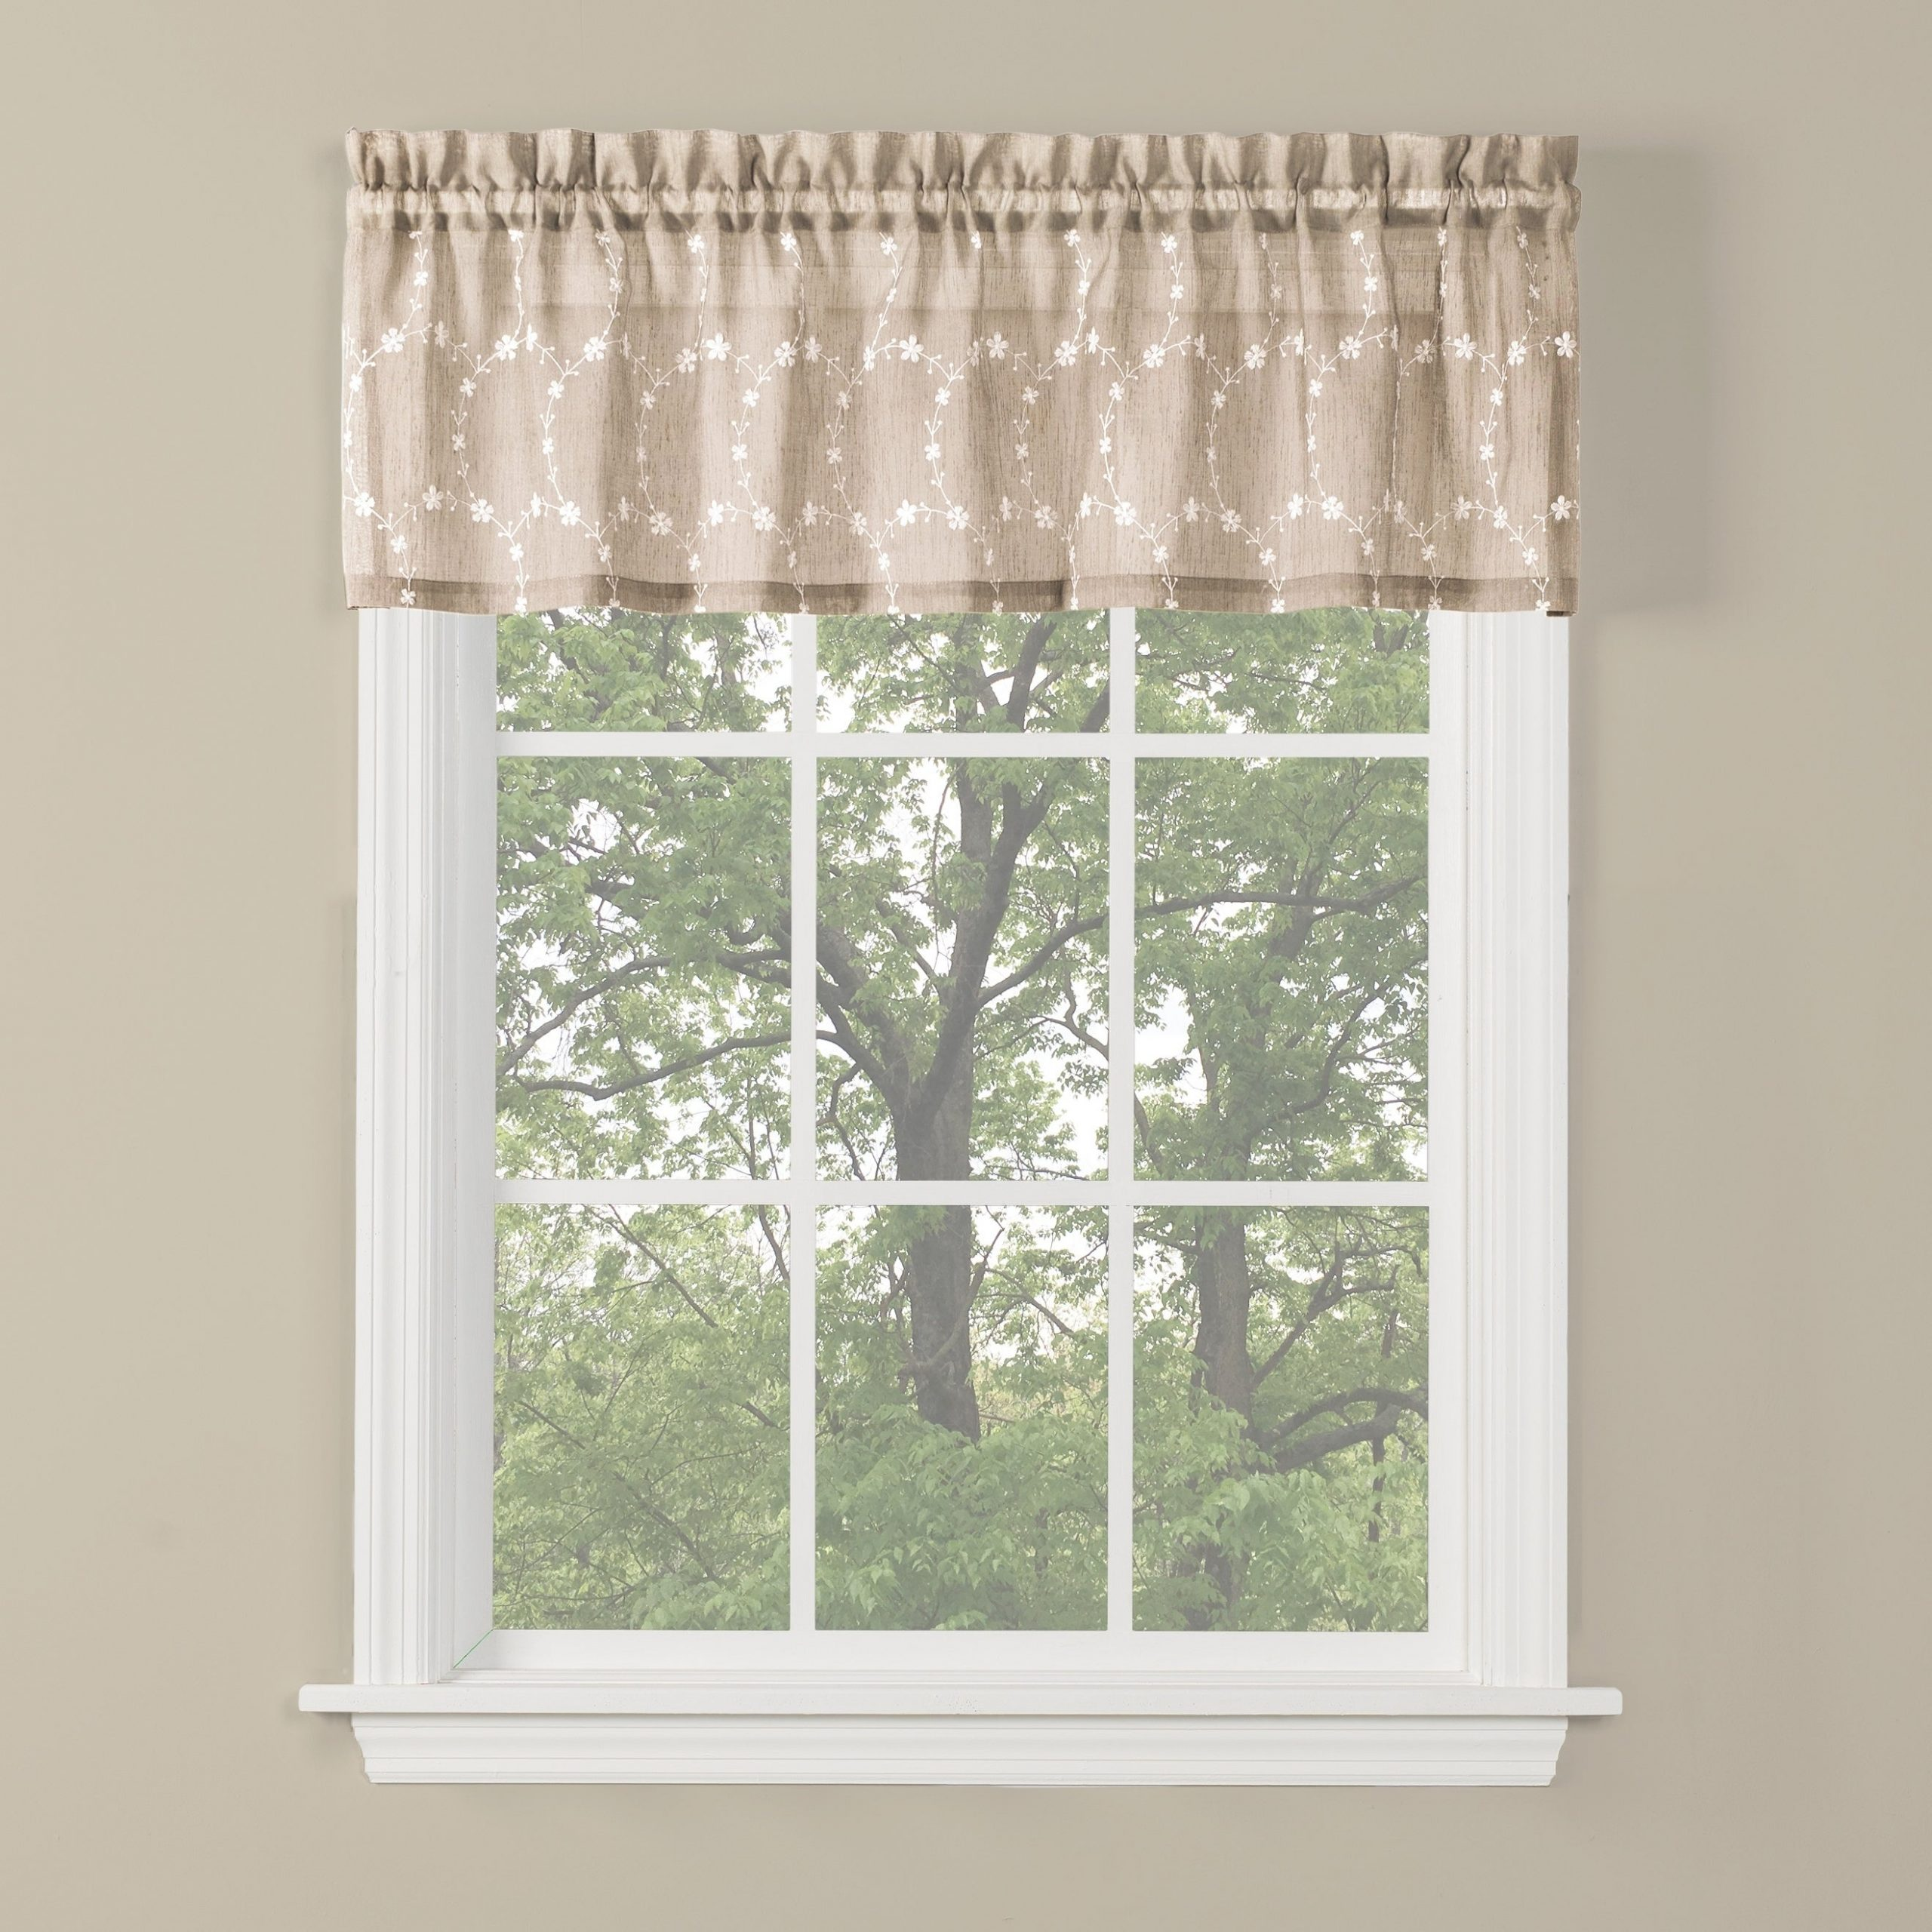 Skl Home Briarwood 13 Inch Valance In Wheat with Dexter 24 Inch Tier Pairs in Green (Image 16 of 20)